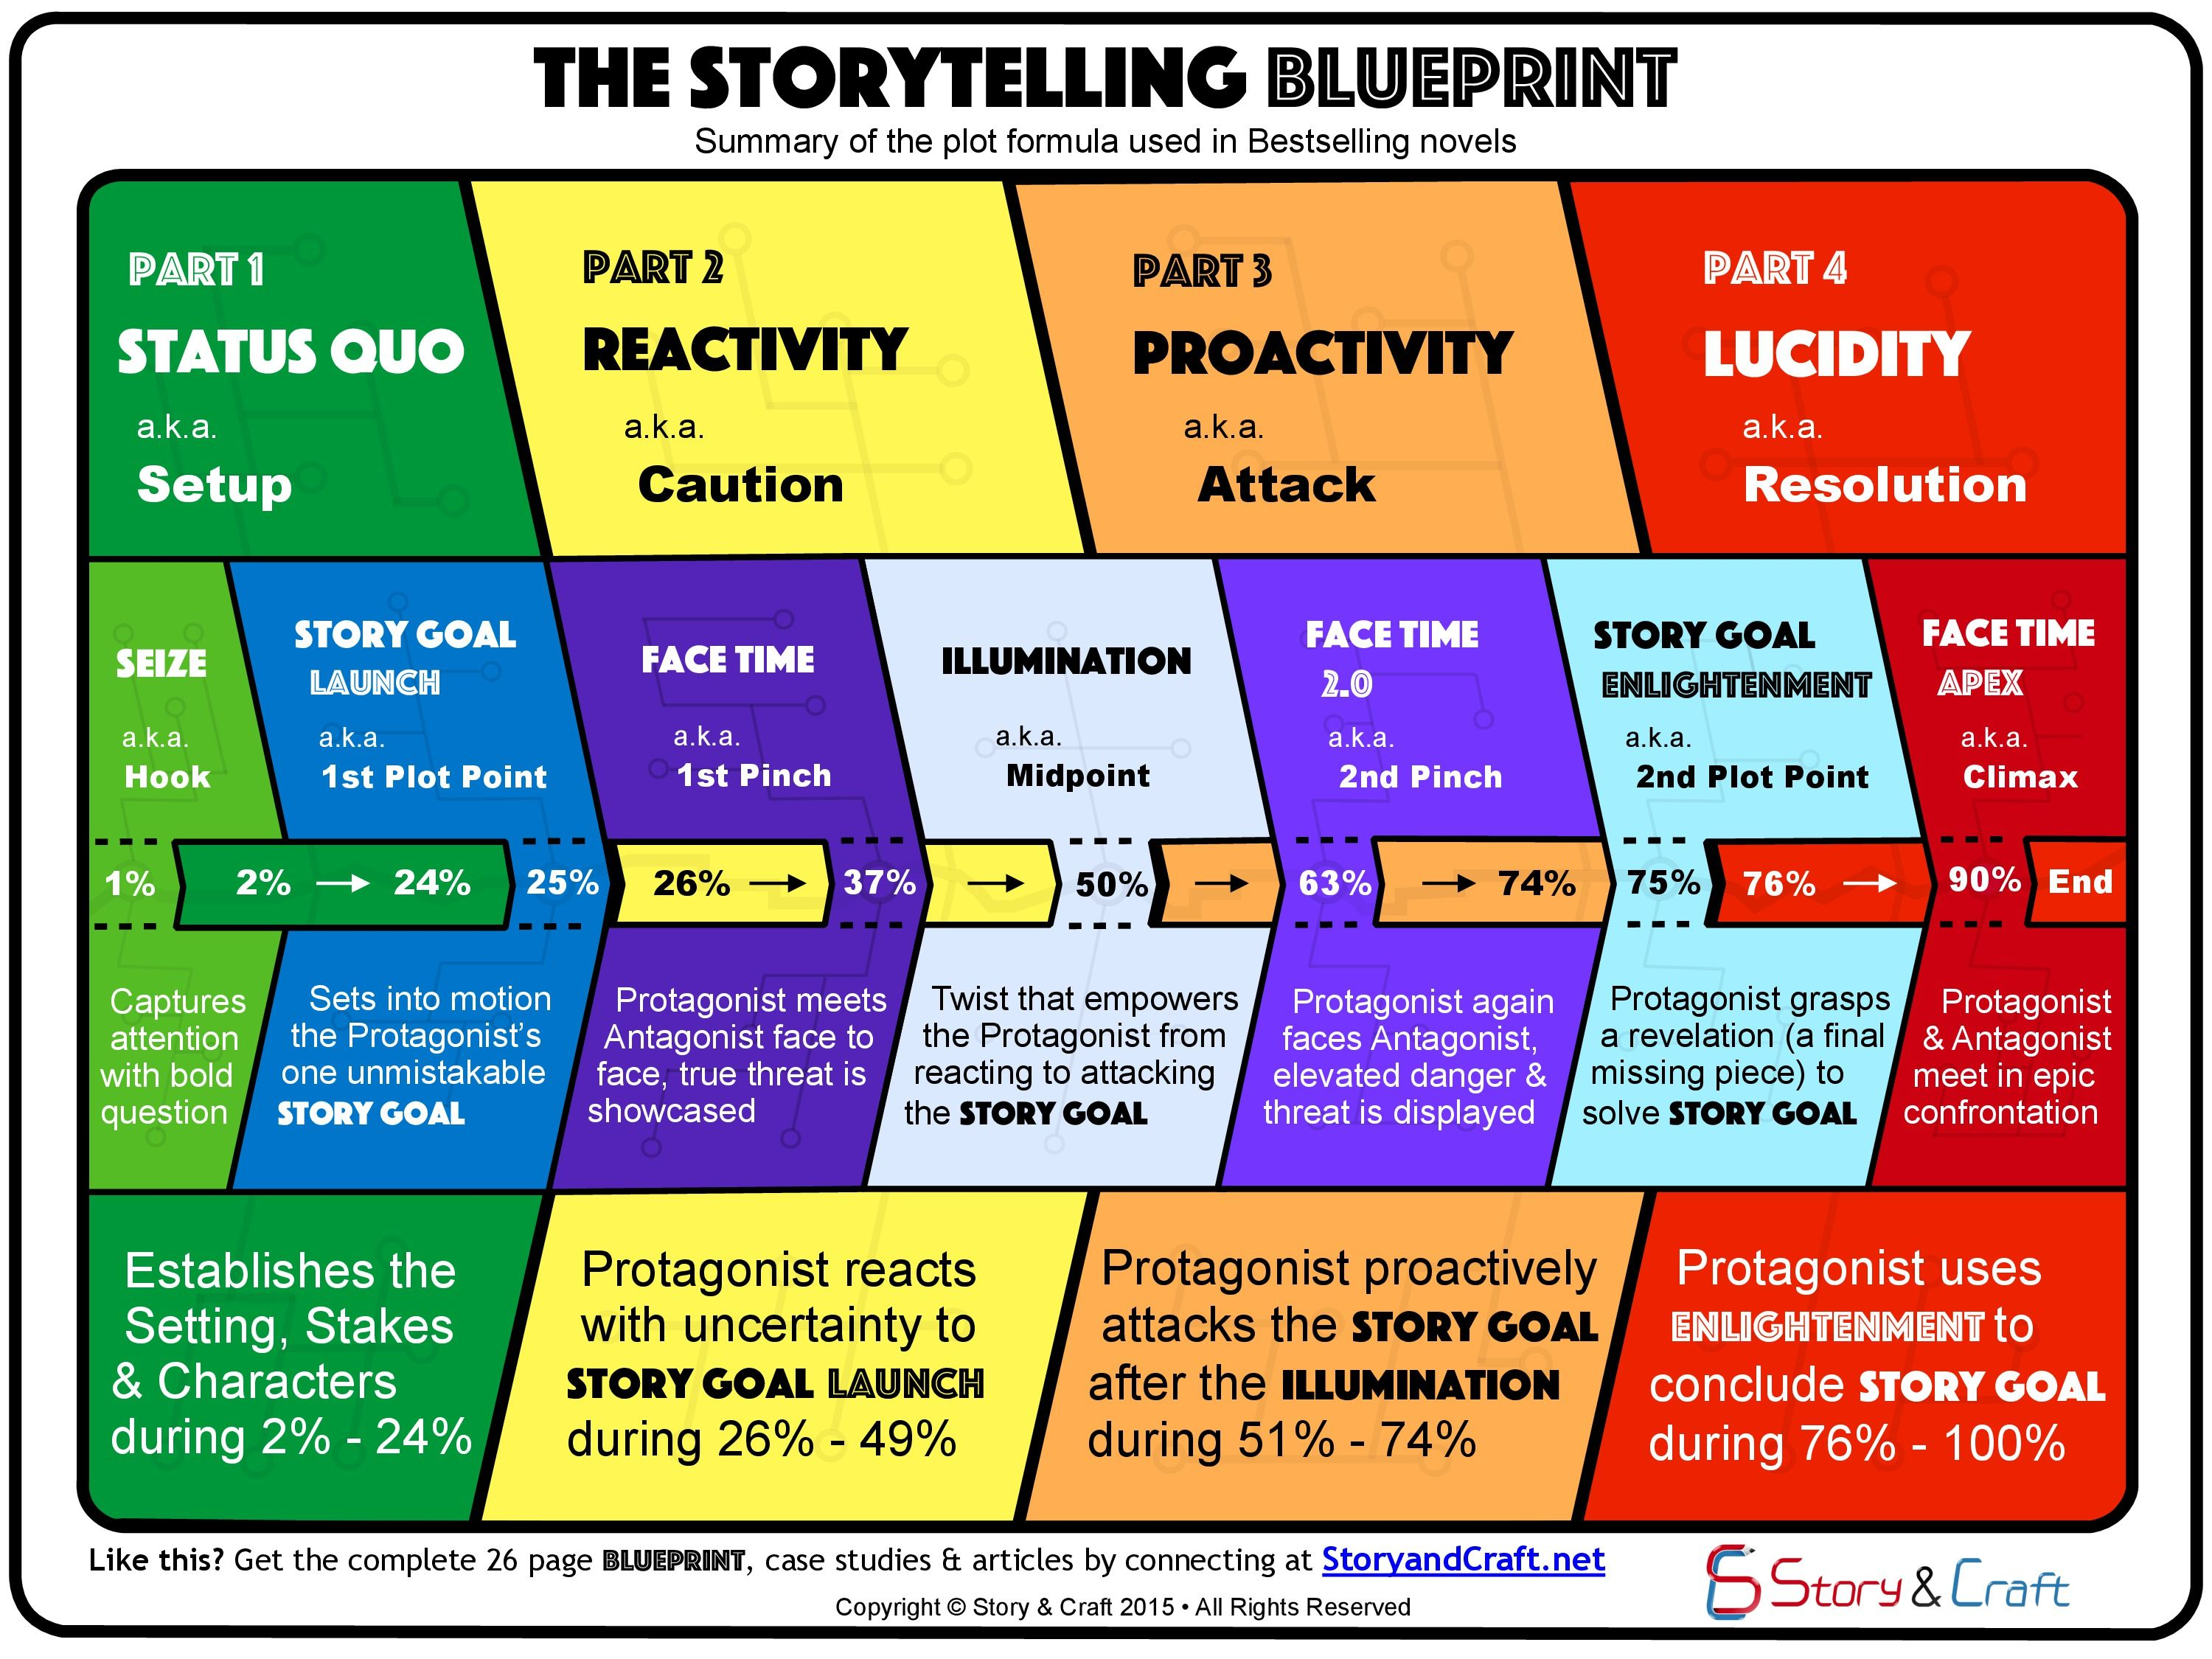 The Storytelling Blueprint Illustrates The Plot Formula